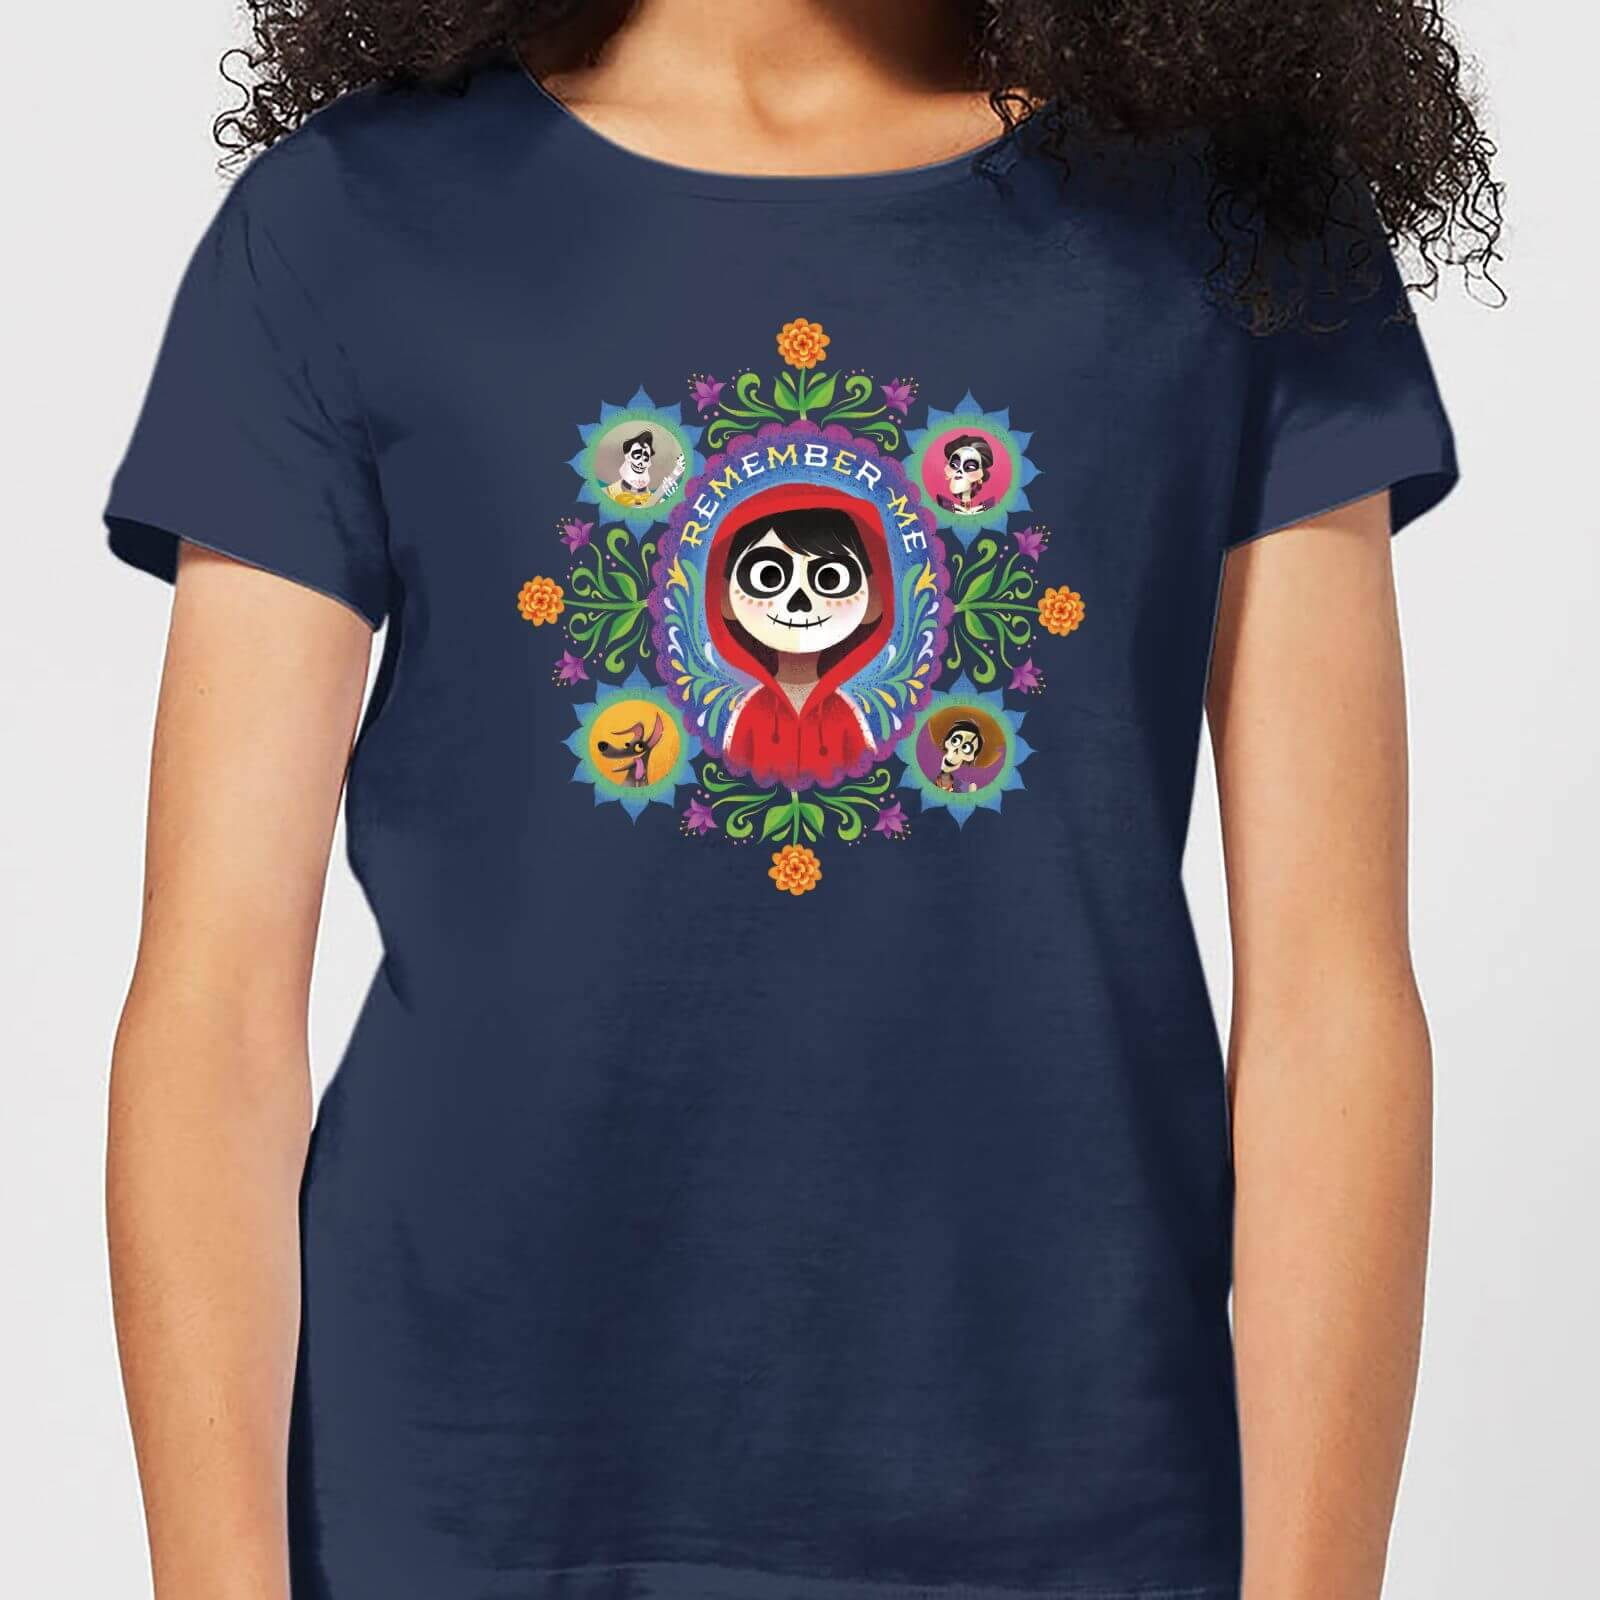 Disney Coco Remember Me Women's T-Shirt - Navy - S - Navy